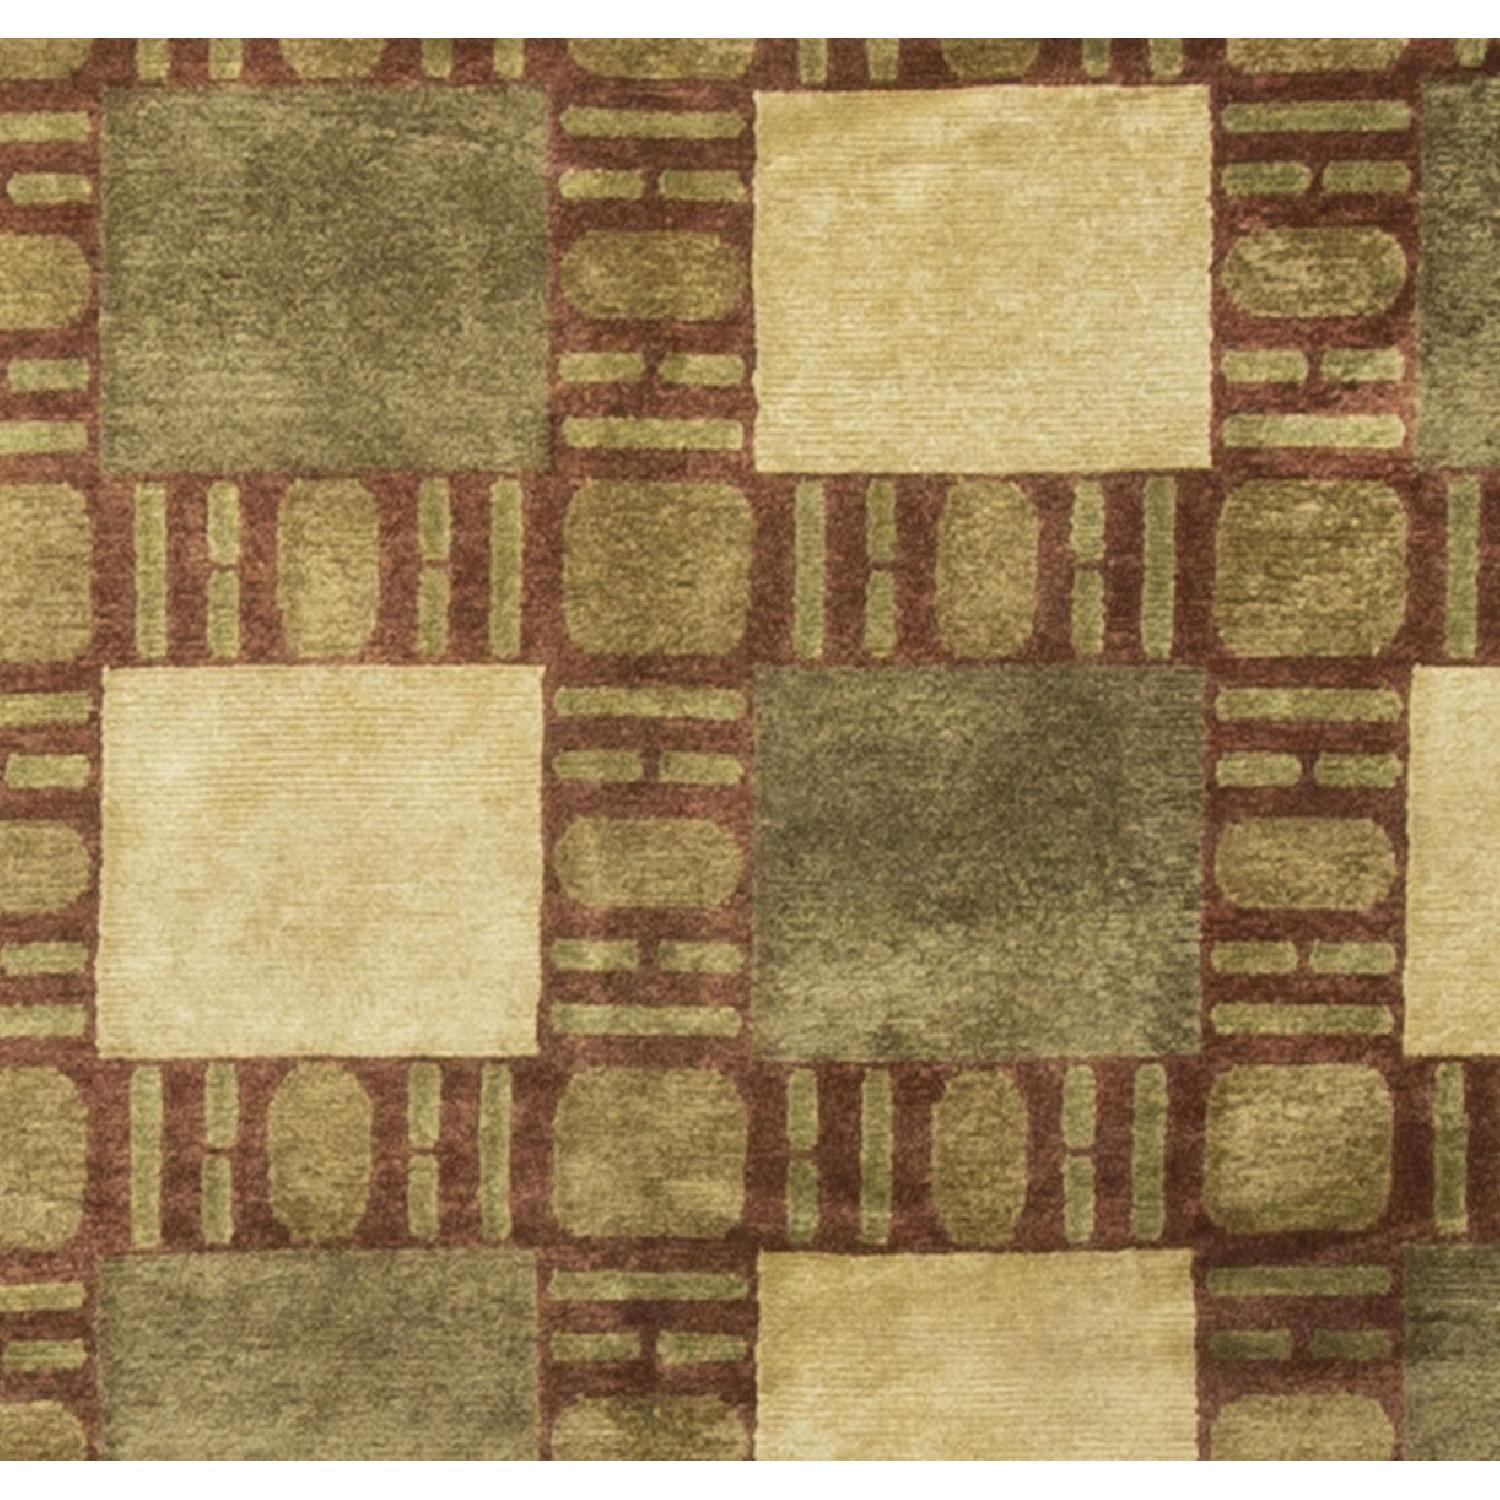 Modern Contemporary Hand Knotted Wool Rug in Gold/Red/Beige - image-1